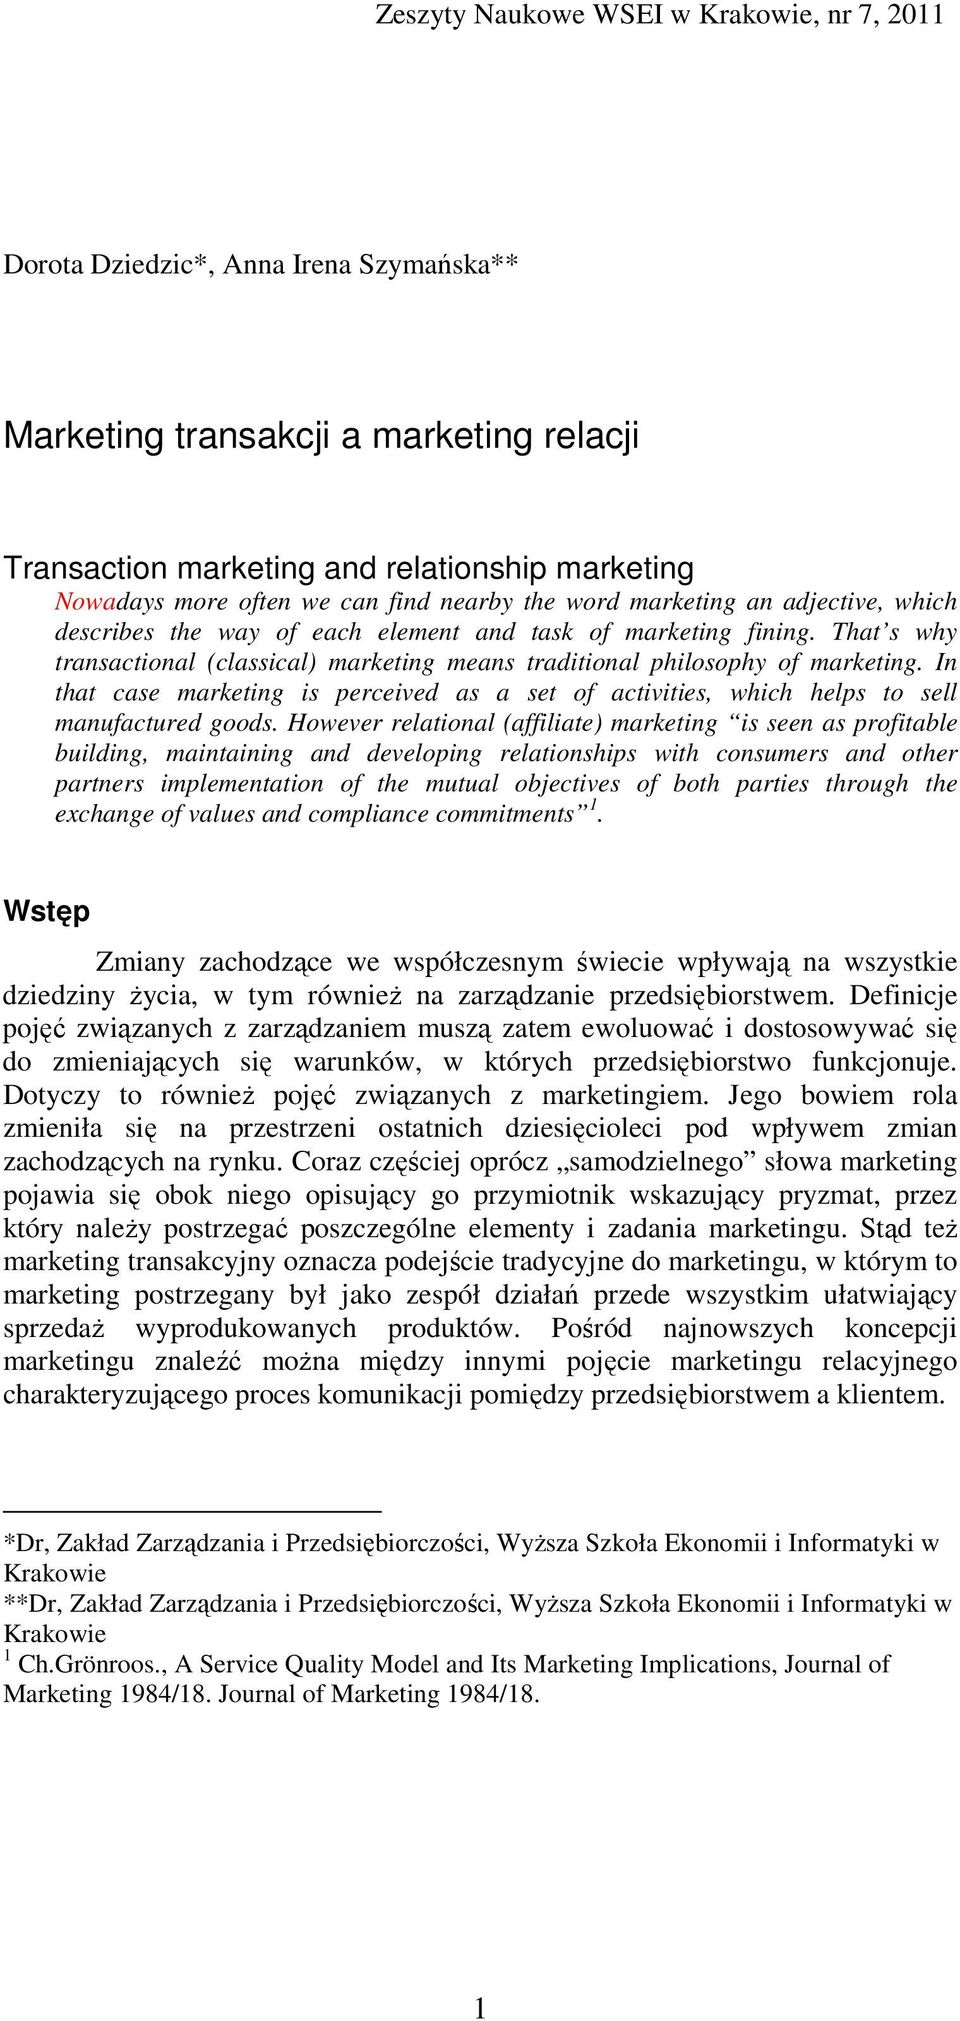 In that case marketing is perceived as a set of activities, which helps to sell manufactured goods.